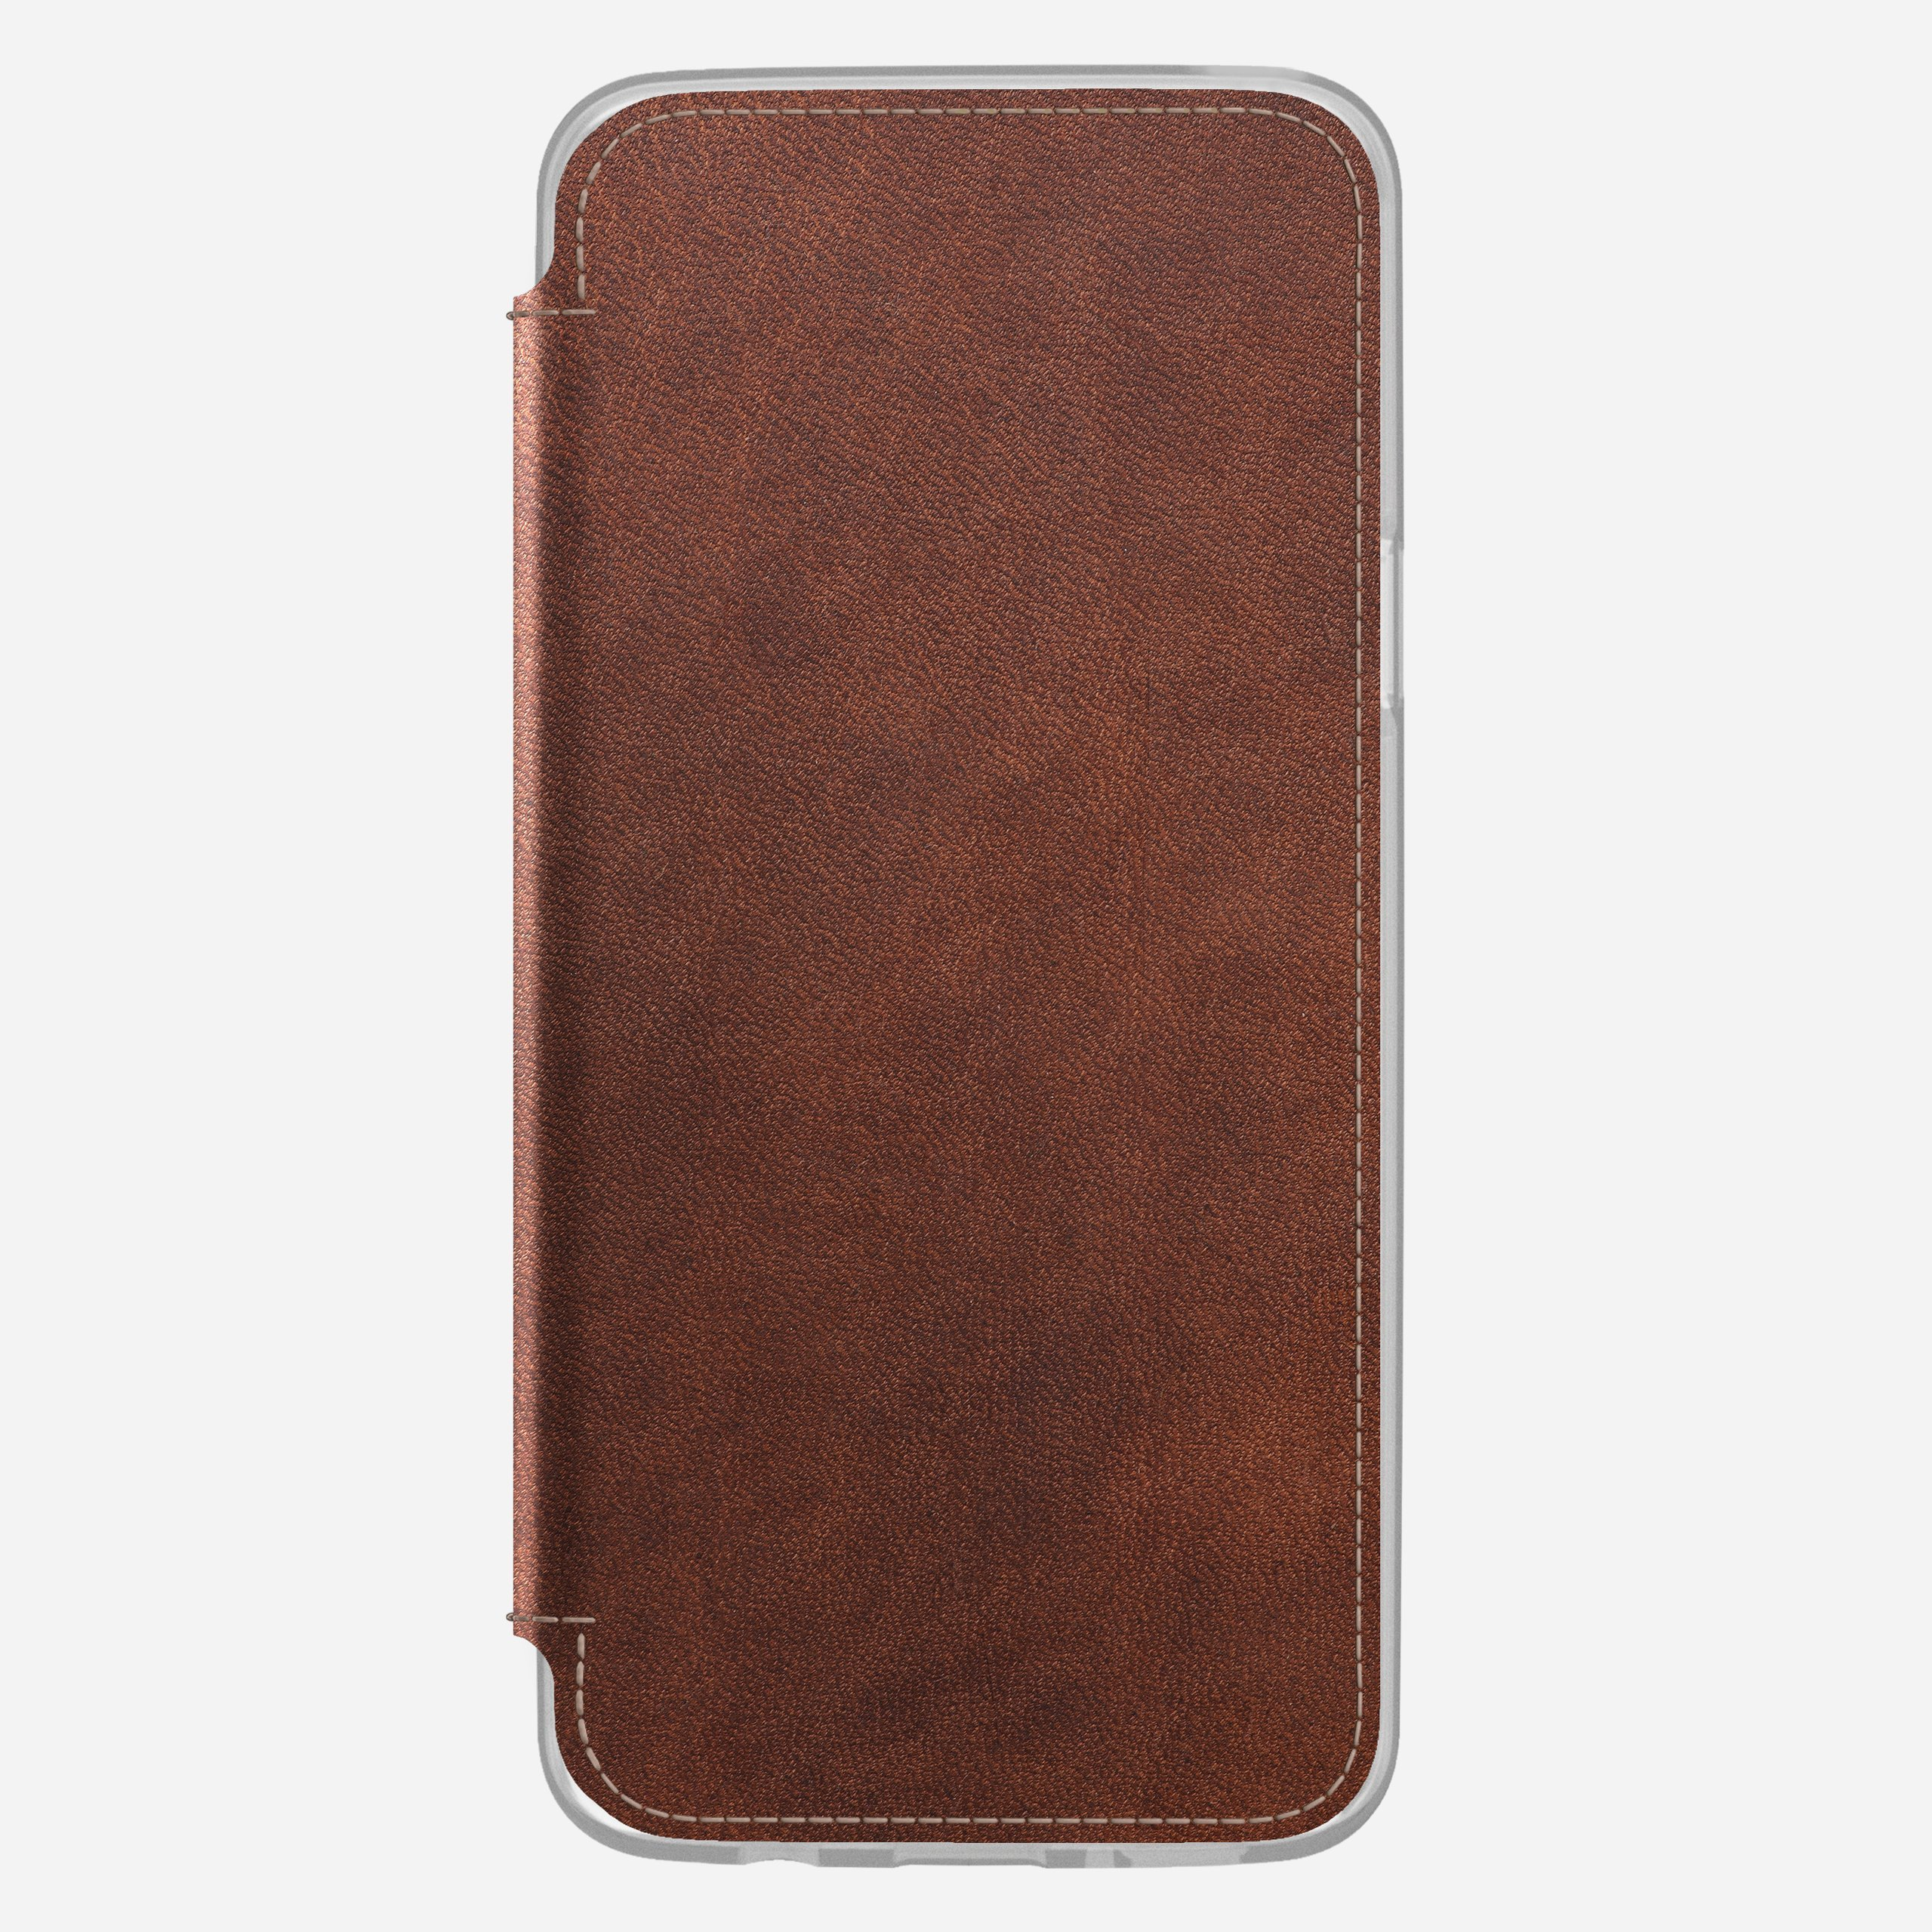 Nomad Clear Folio for Samsung S9 Plus - Image 6